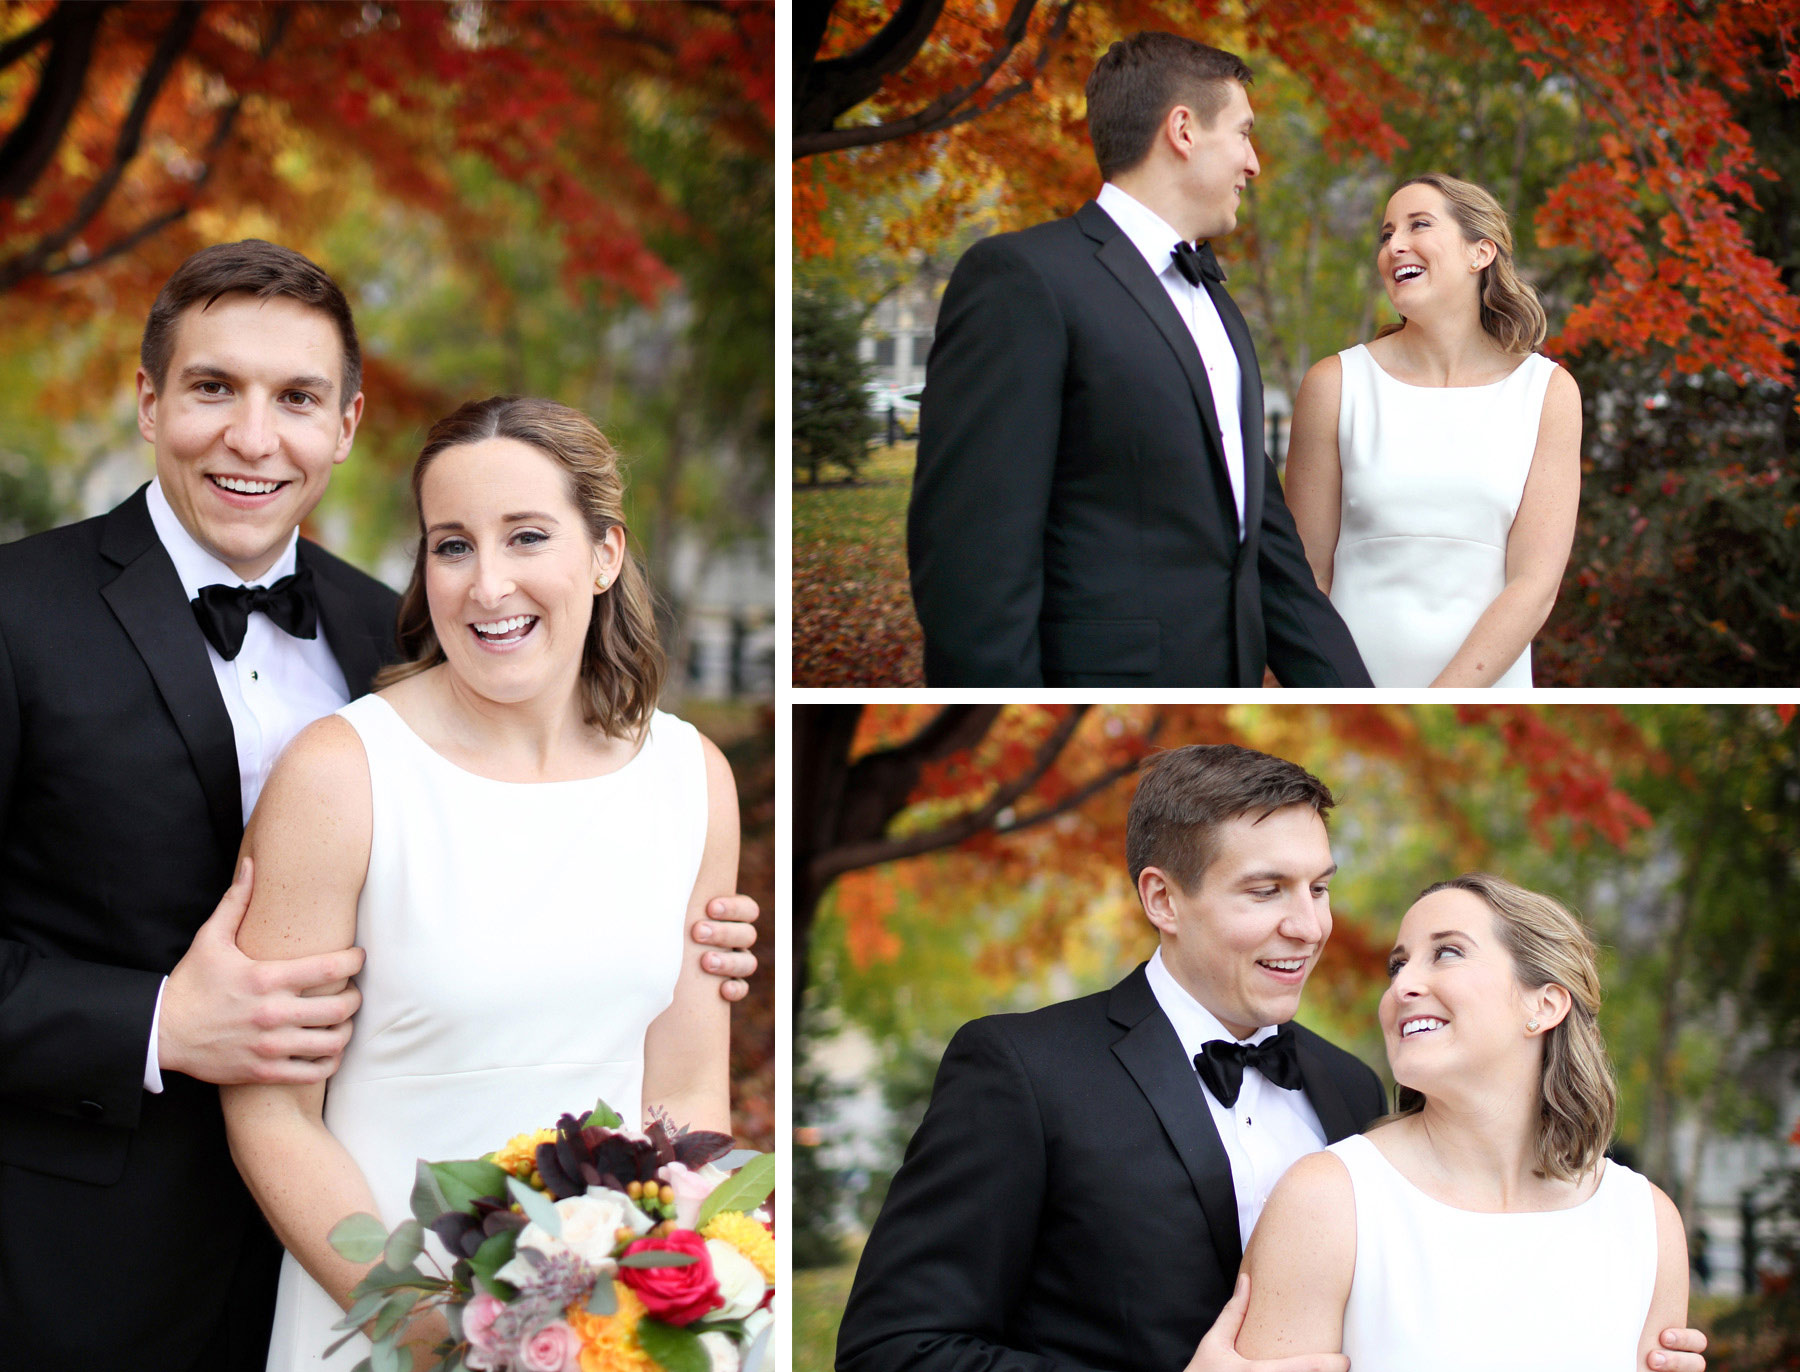 12-Saint-Paul-Minnesota-Wedding-Photographer-by-Andrew-Vick-Photography-Fall-Autumn-Rice-Park-Bride-Groom-Embrace-Laughter-Kathryn-and-Sam.jpg